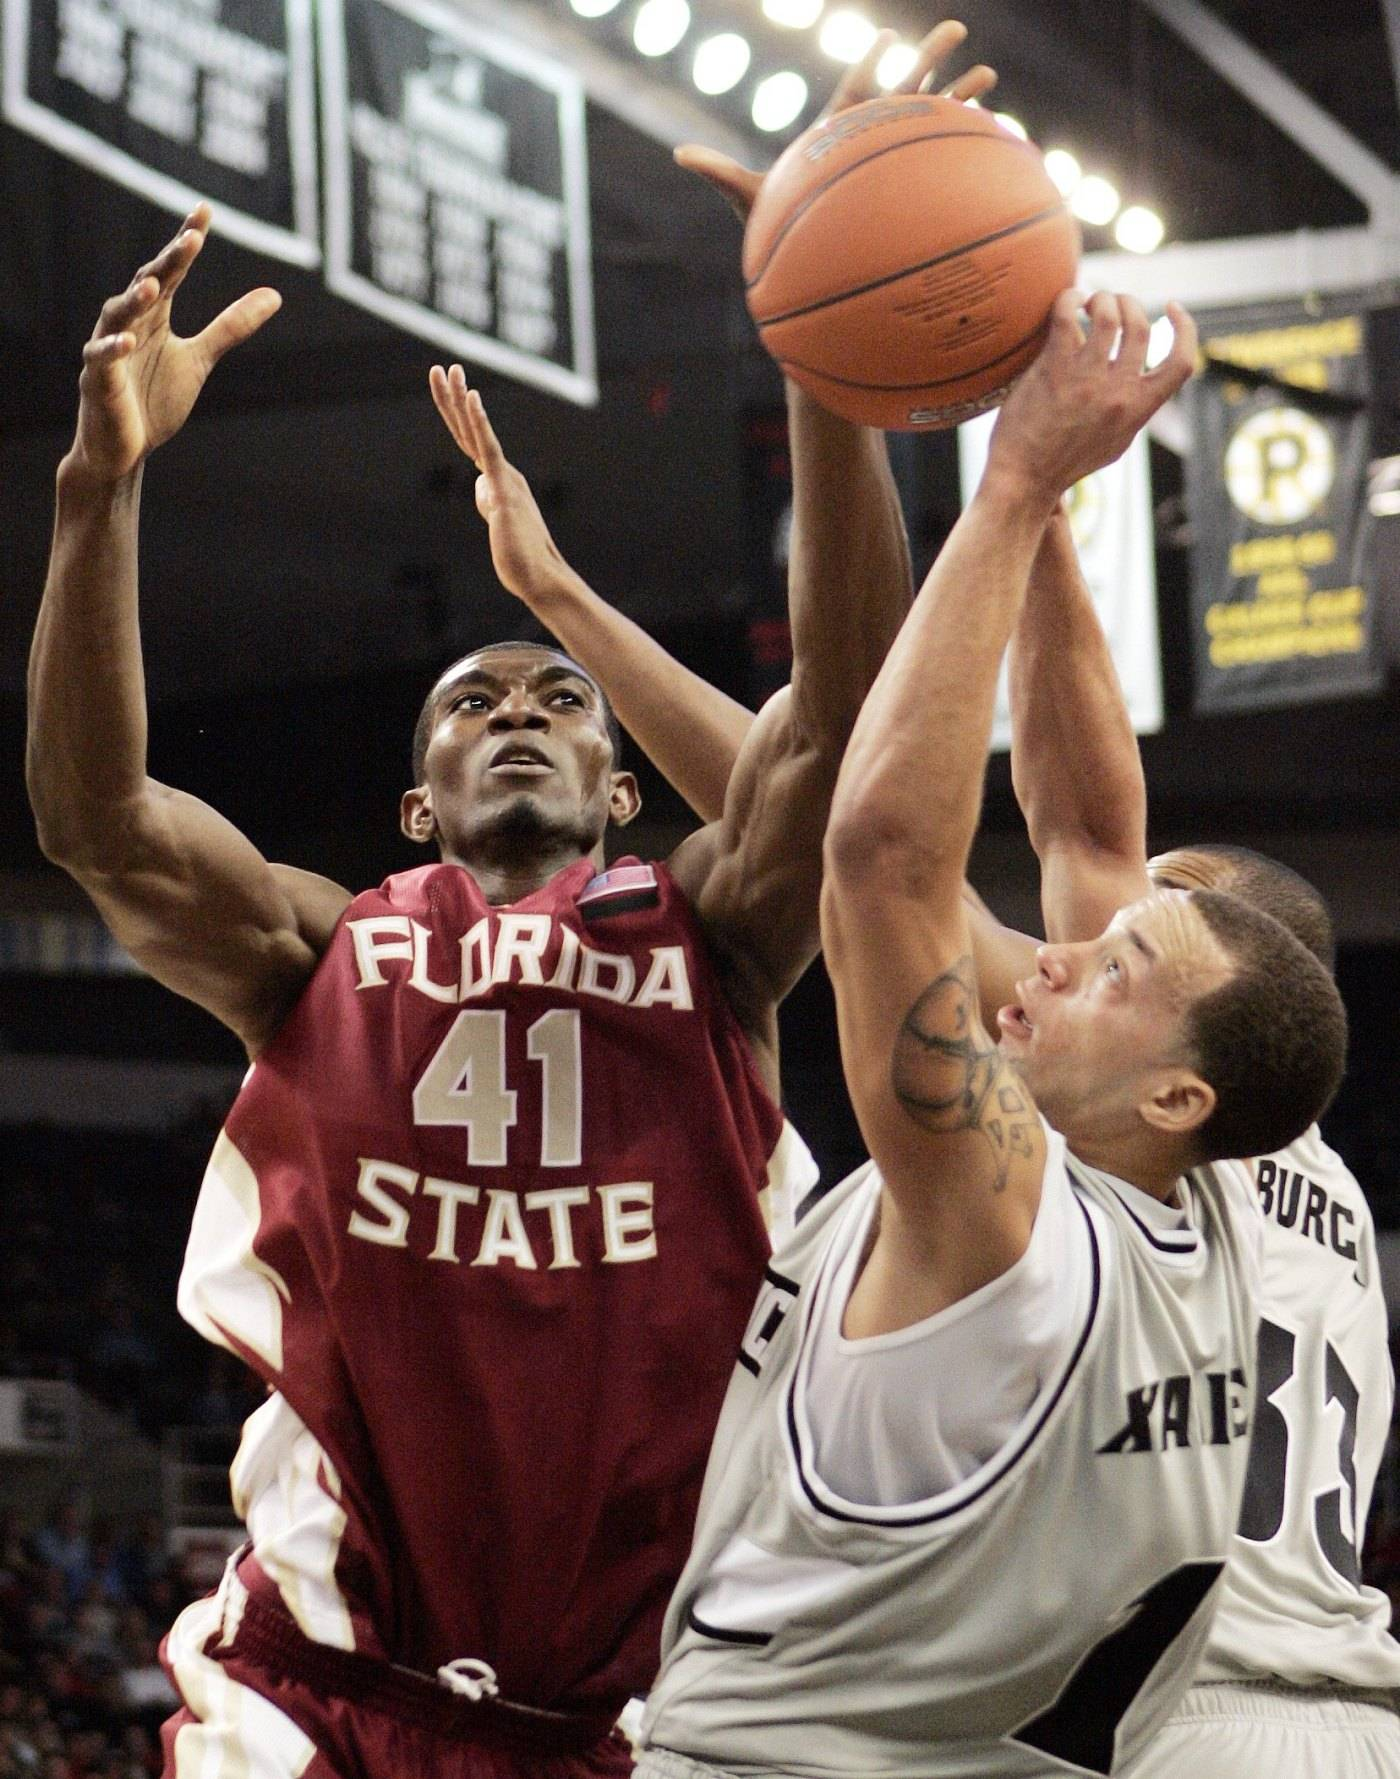 Florida State's Uche Echefu battles Providence's Jeff Xavier for a rebound in the second half.